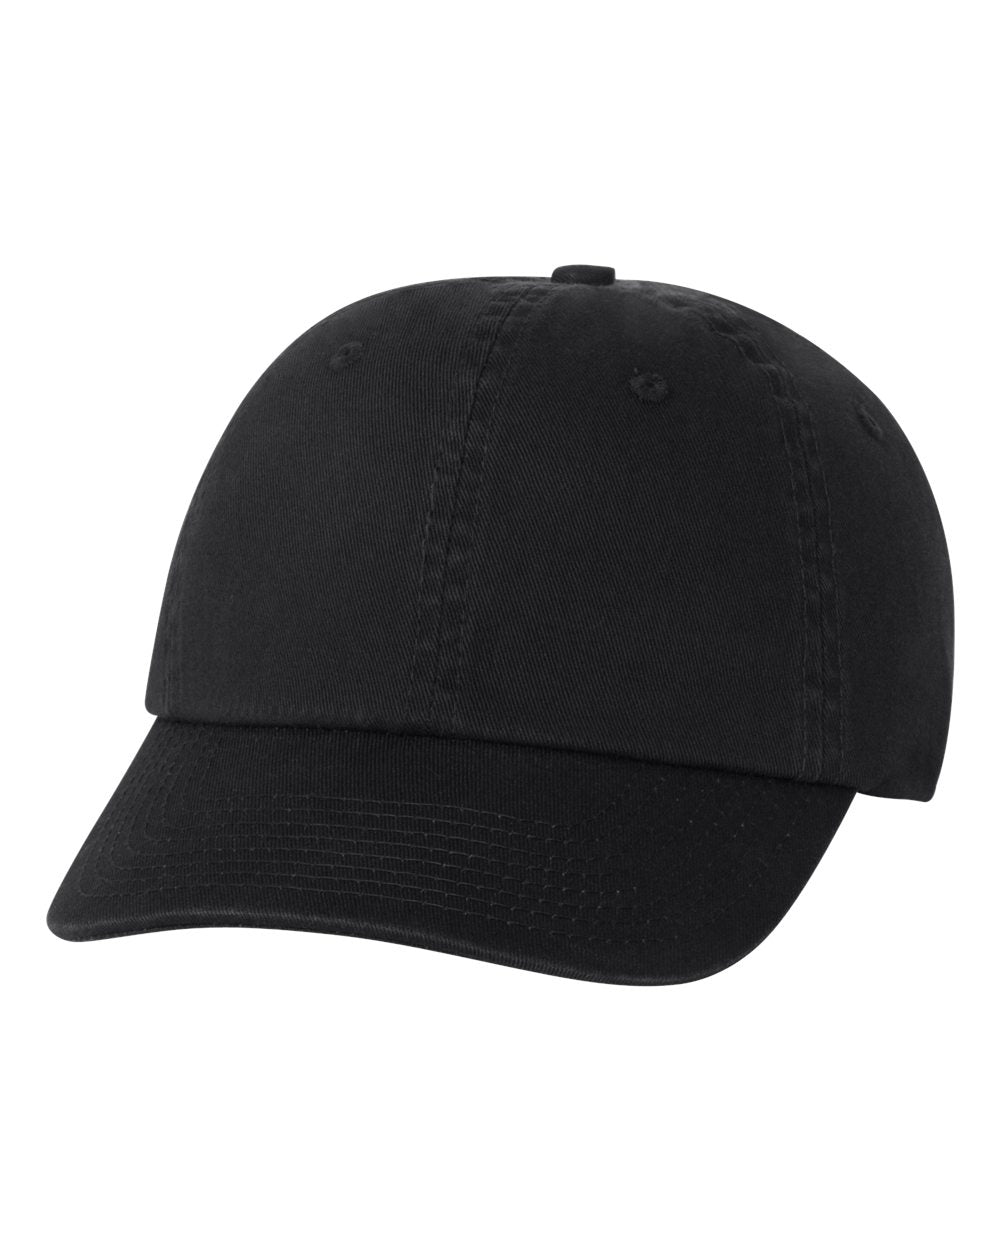 3630 - USA-Made Unstructured Cap